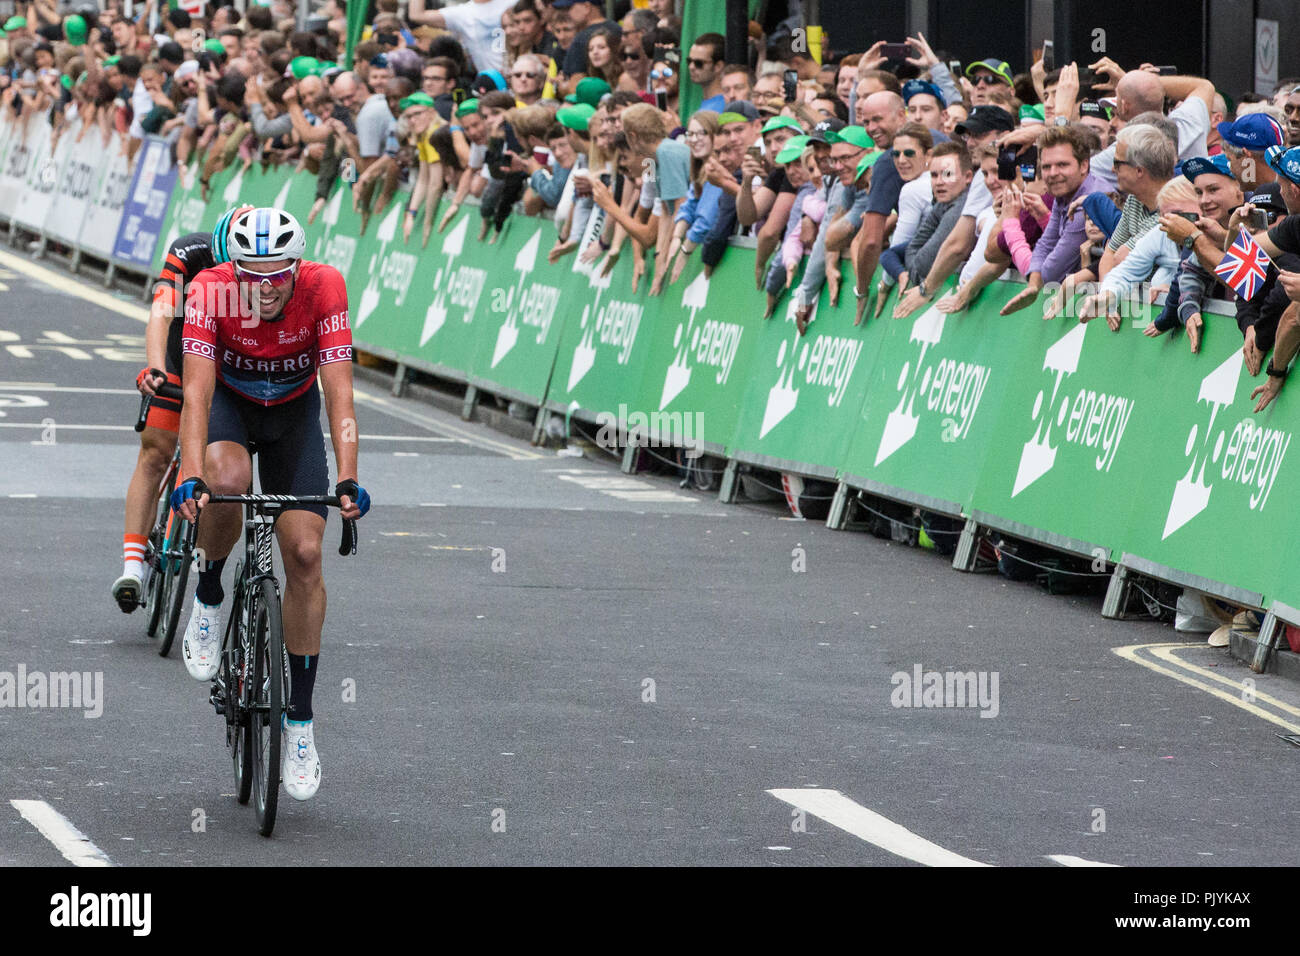 London, UK. 9th September, 2018. Canyon Eisberg's Alex Paton wins the Eisberg Sprints Jersey from Madison Genesis's Matt Holmes in a close finish following the 77km London Stage (Stage 8) of the OVO Energy Tour of Britain cycle race. Credit: Mark Kerrison/Alamy Live News - Stock Image